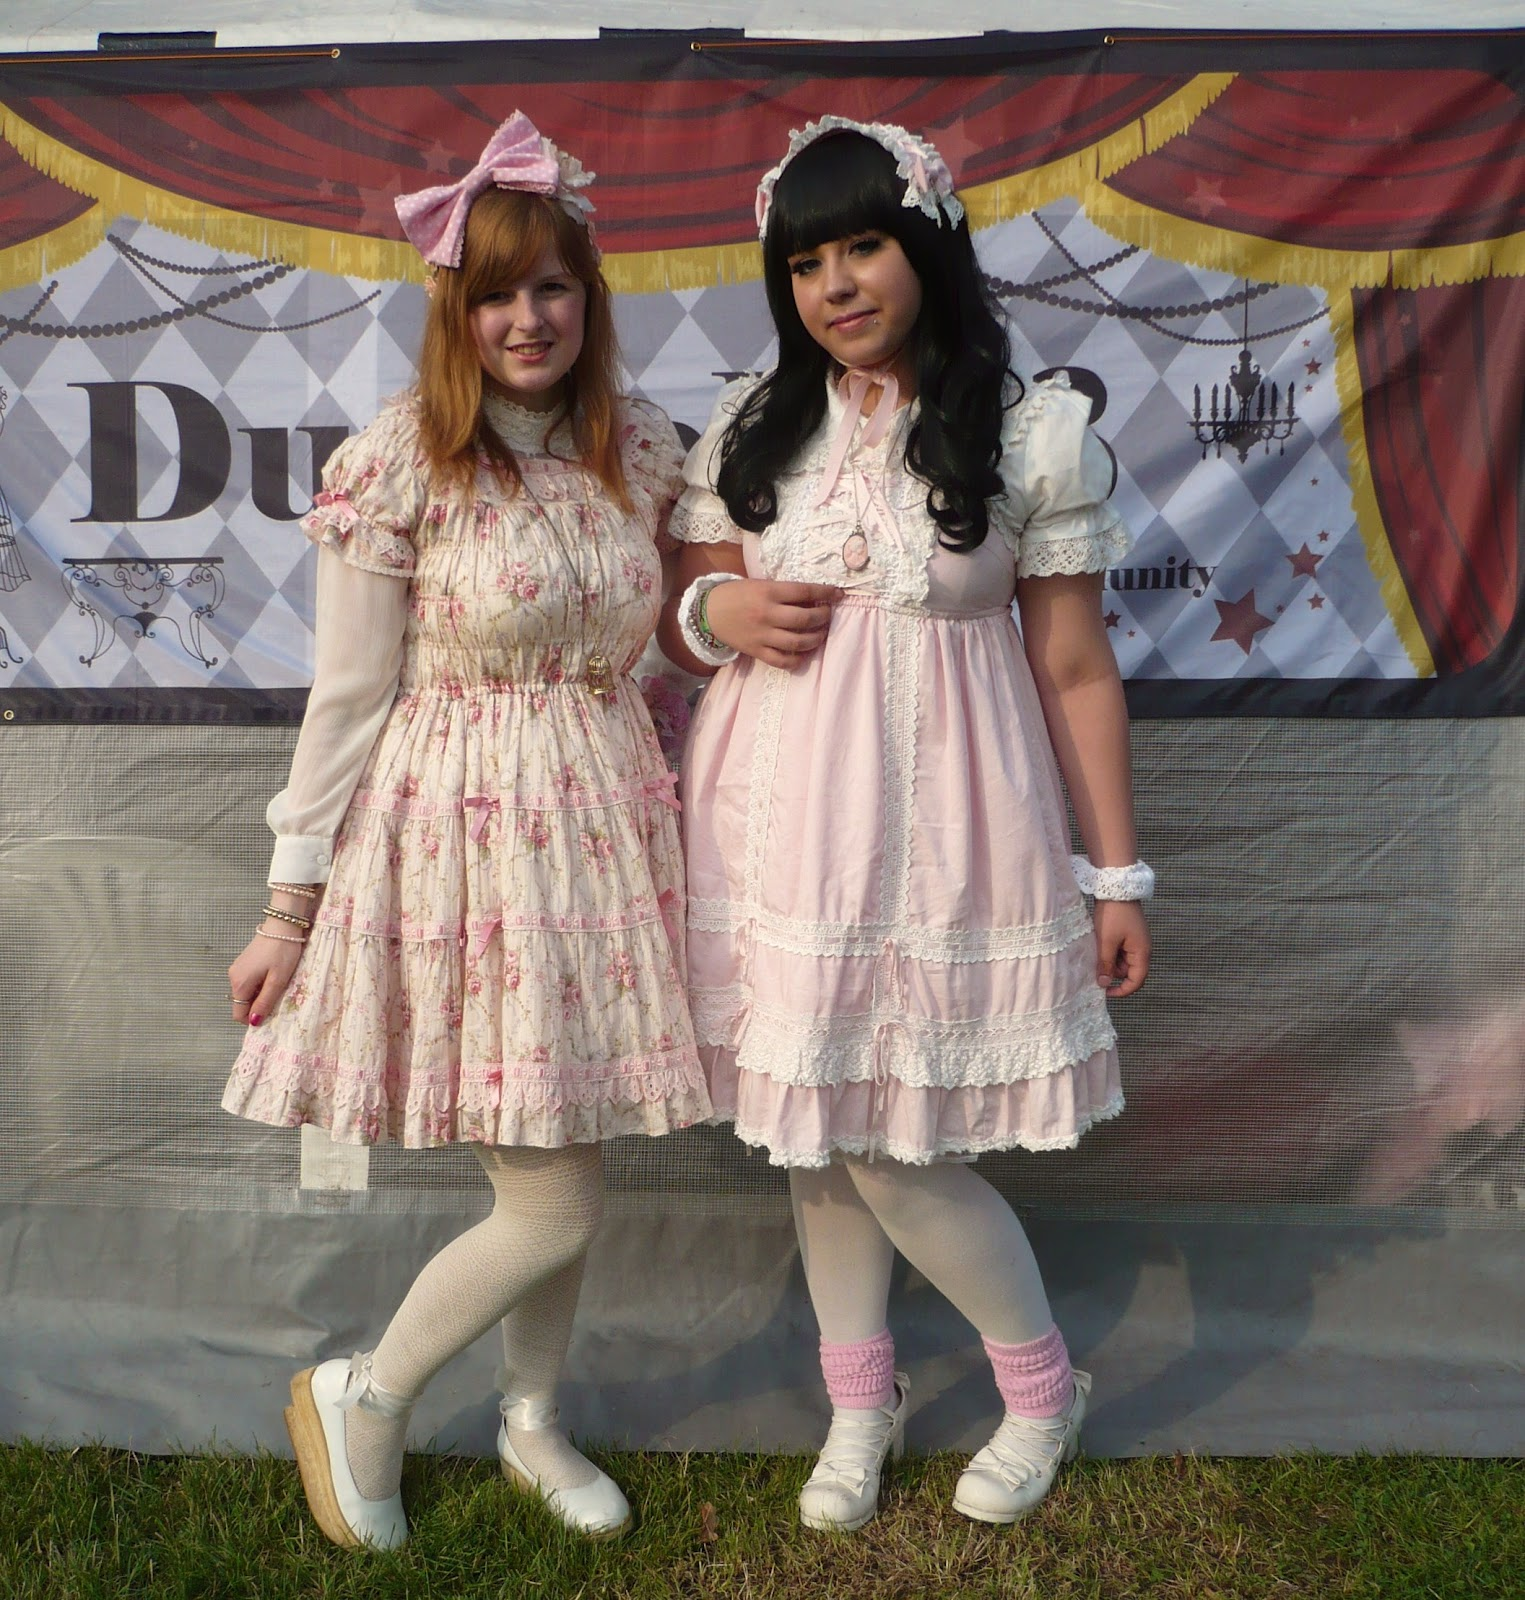 up23.jp girl with my friend Creamy => her lovely blog: Klick <3